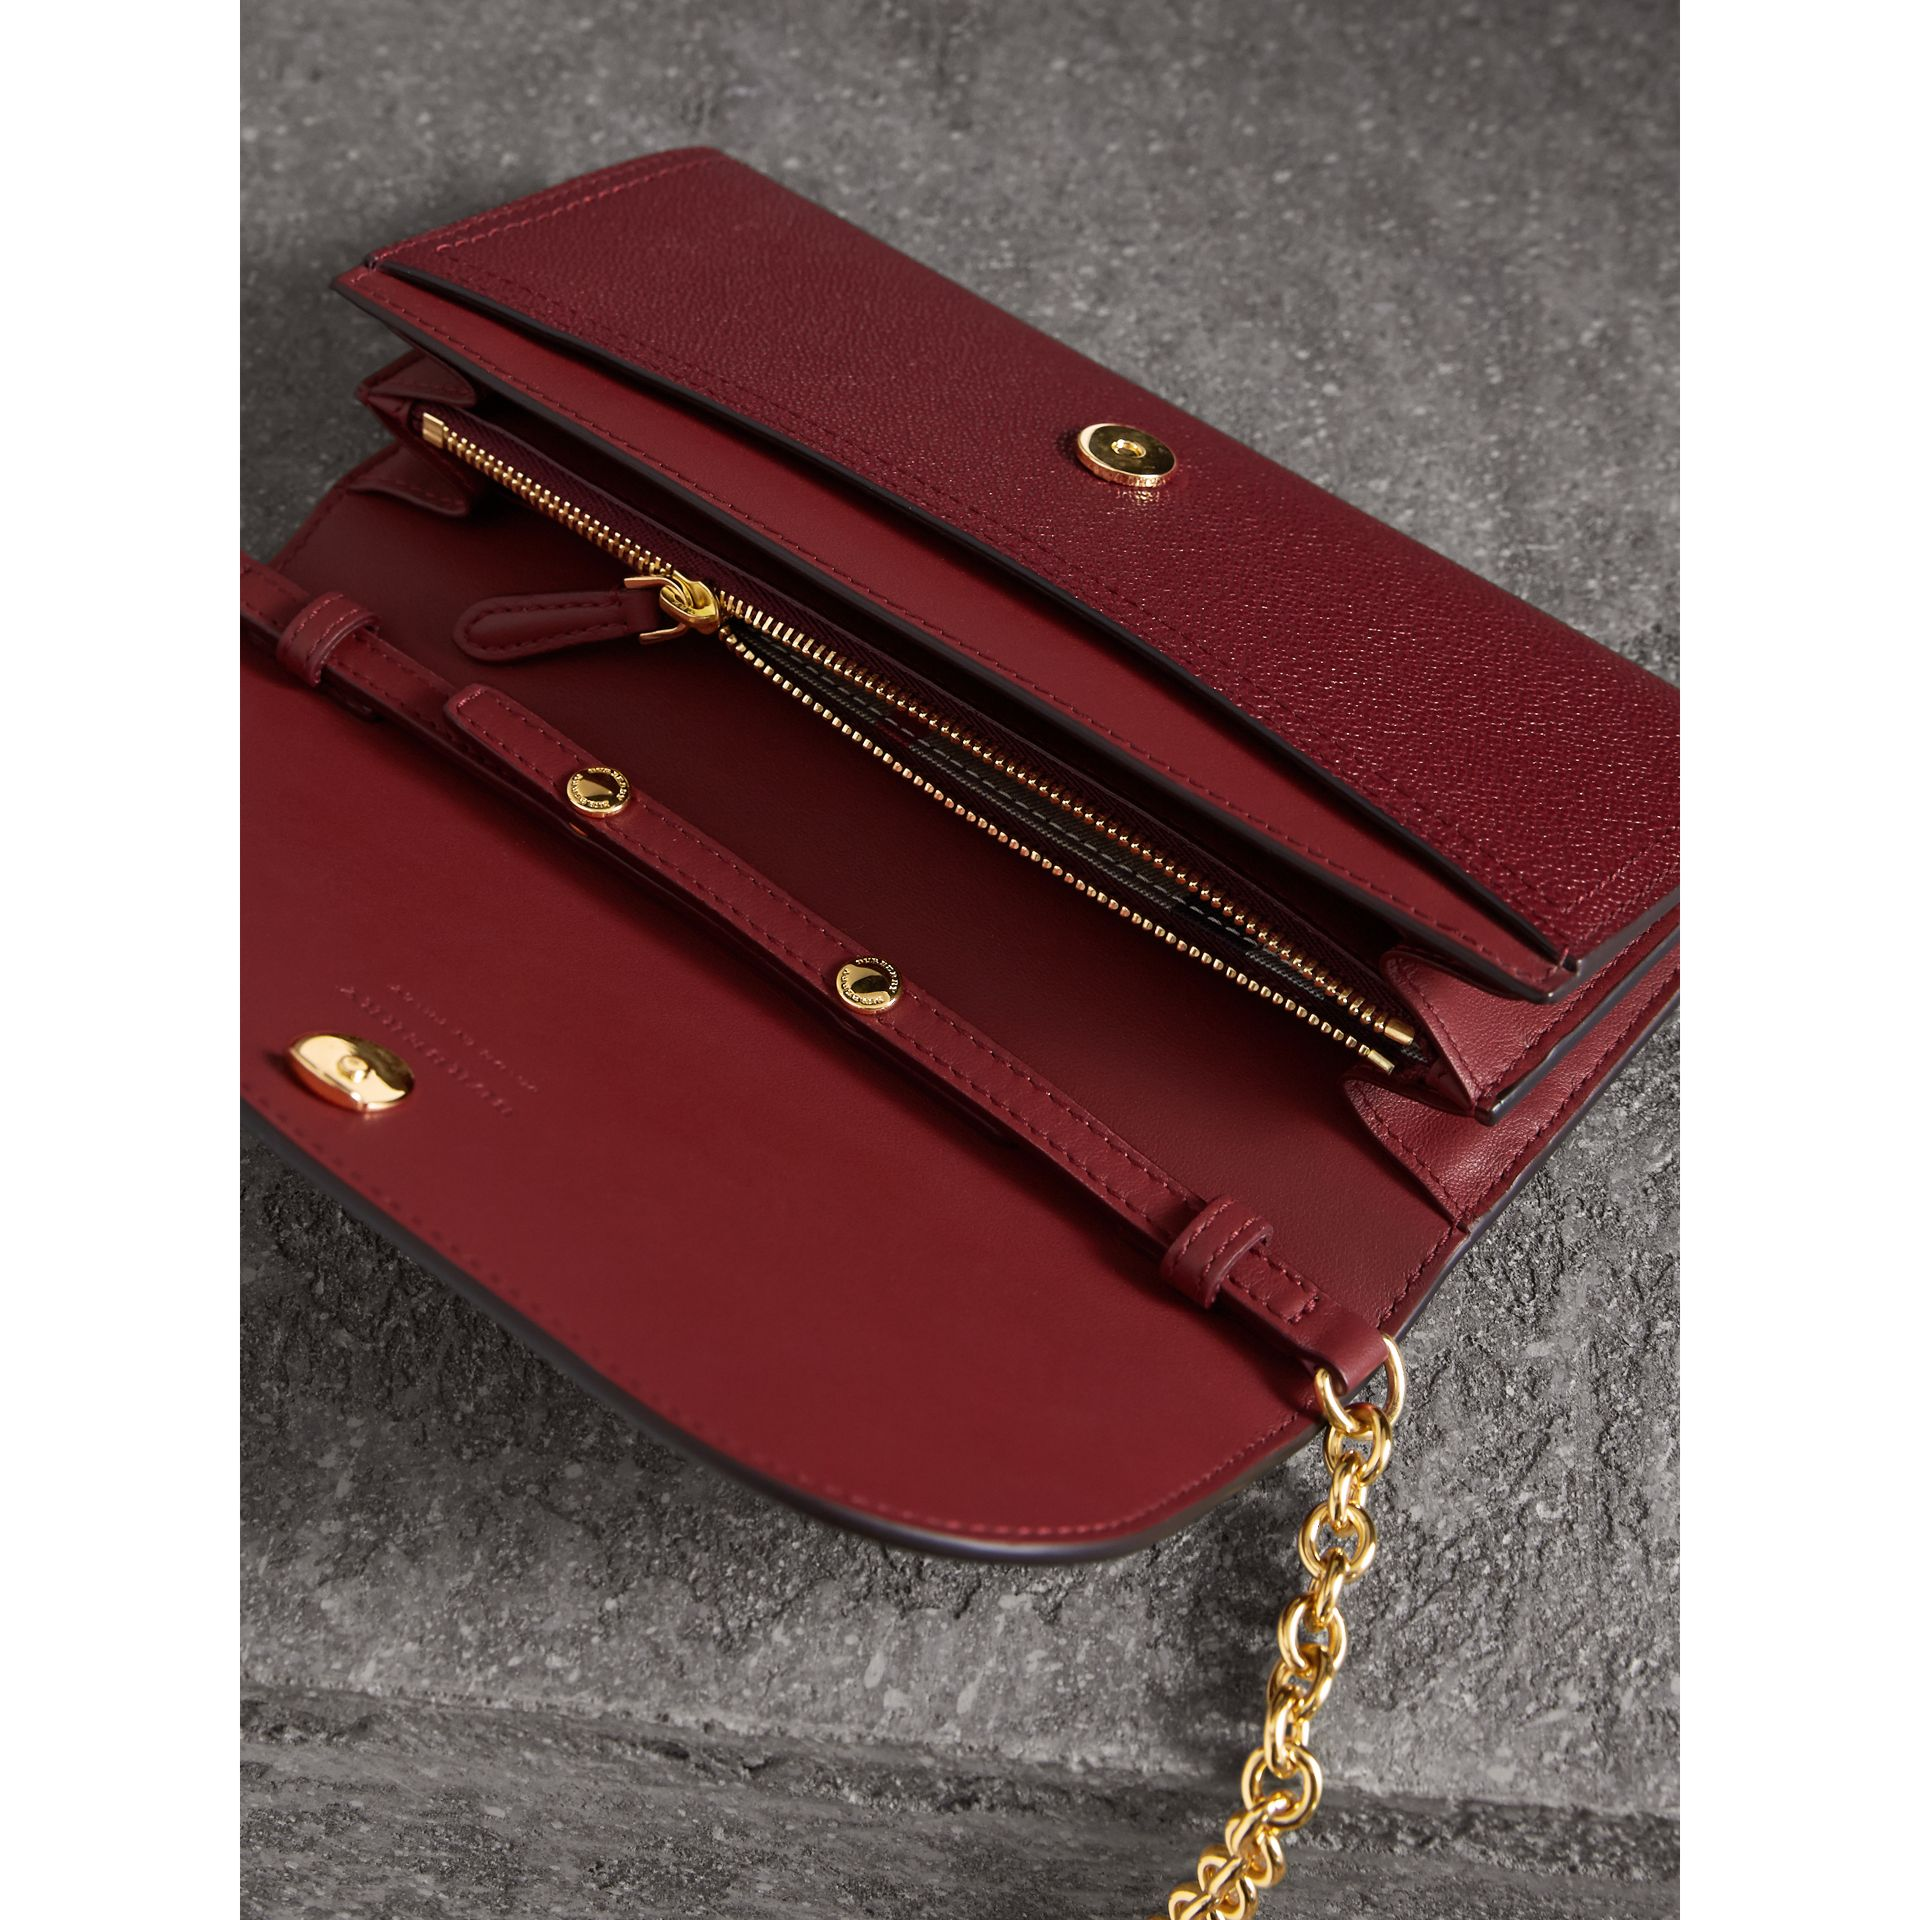 Leather Wallet with Chain in Burgundy - Women | Burberry Australia - gallery image 6